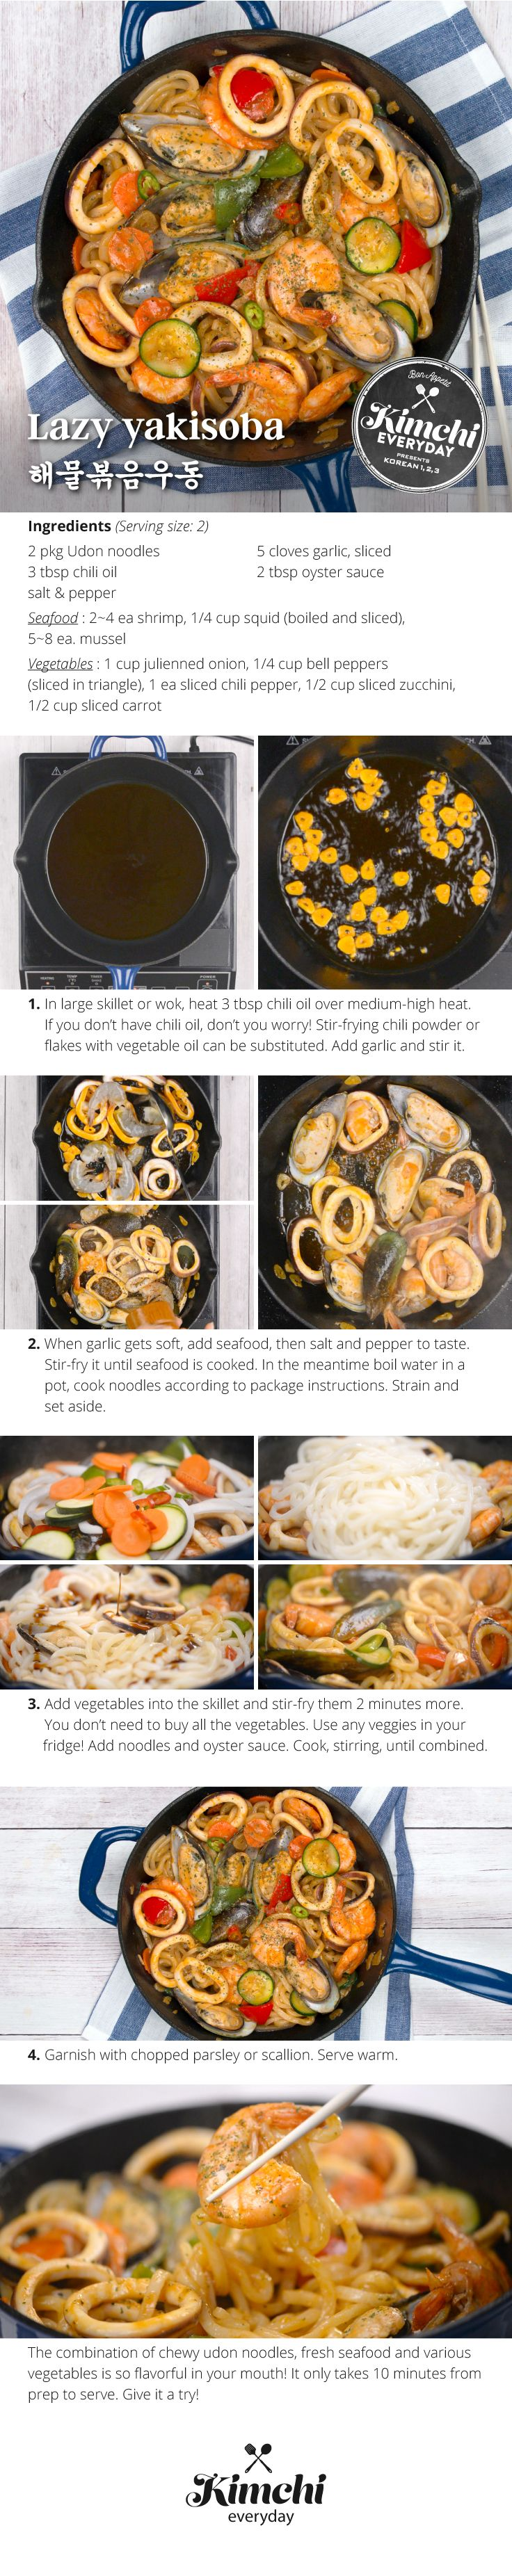 So fast. So tasty. The perfect one-pan recipe for those lazy noodle lovers!